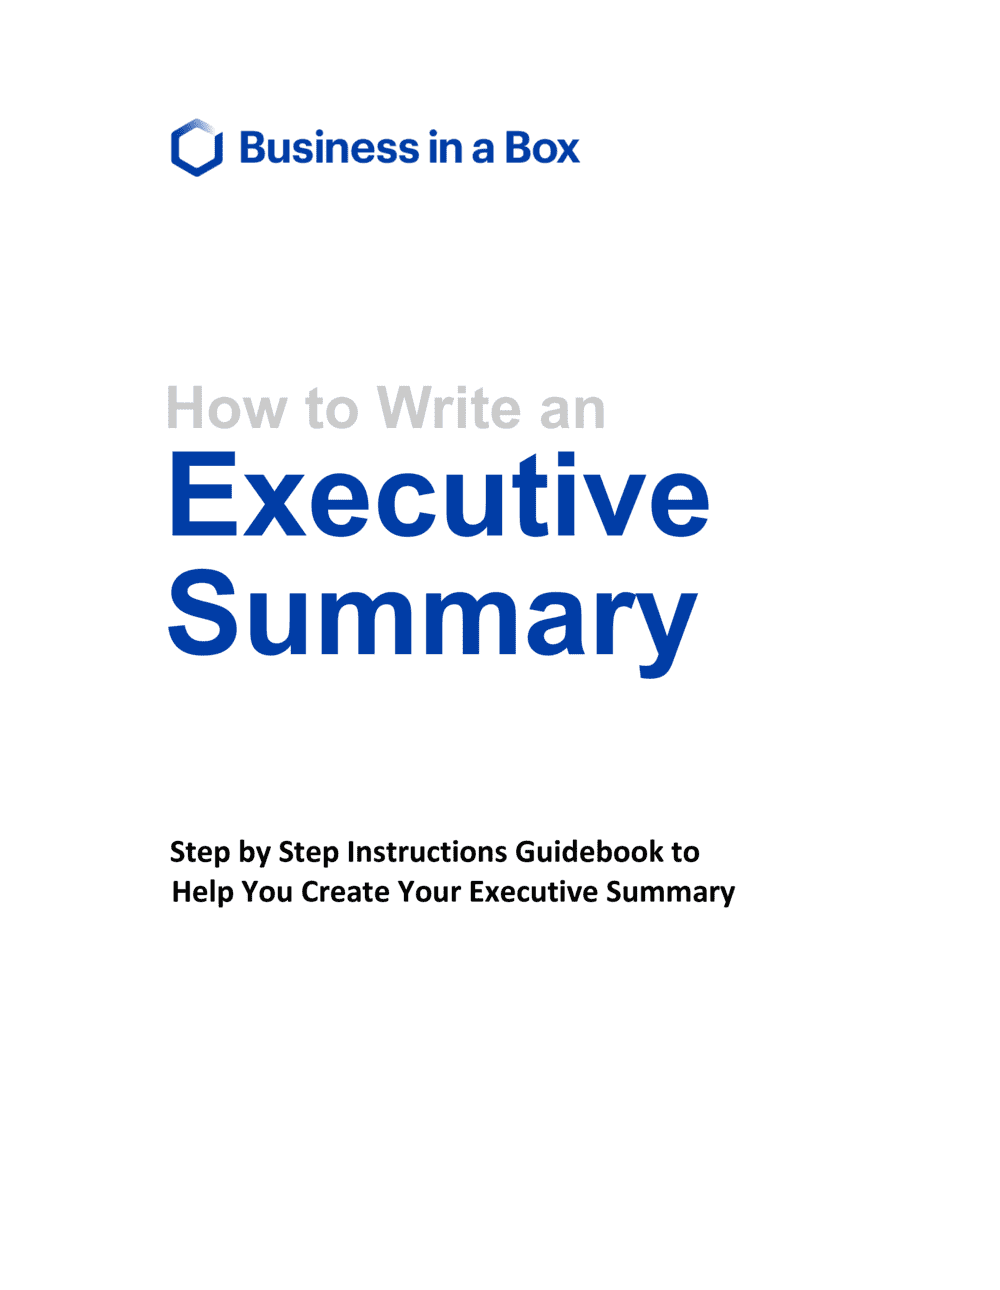 Business-in-a-Box's How to write an Executive Summary